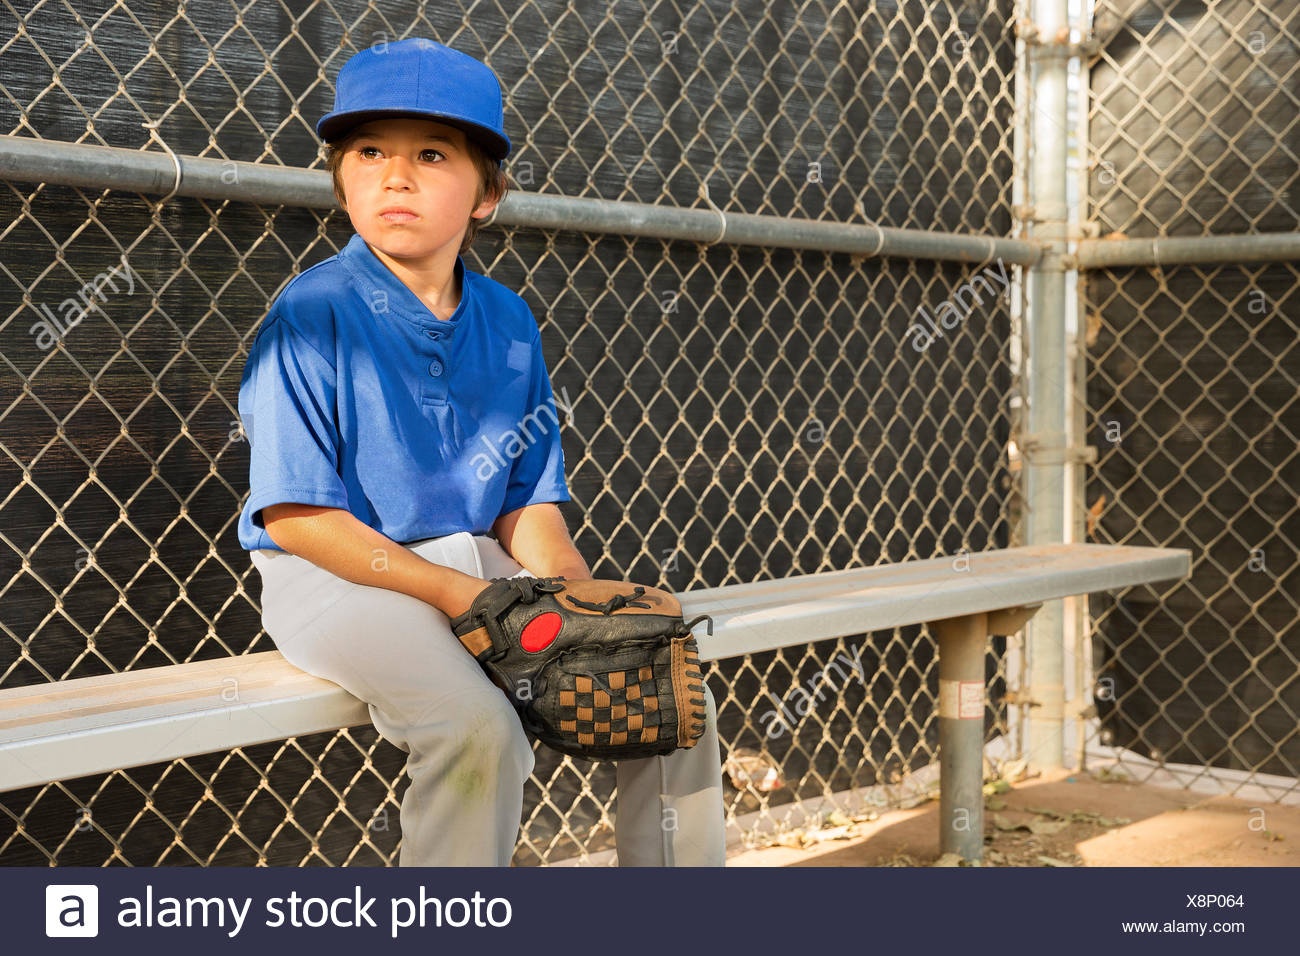 kid lot games your bench shutterstock baseball sit a on the in